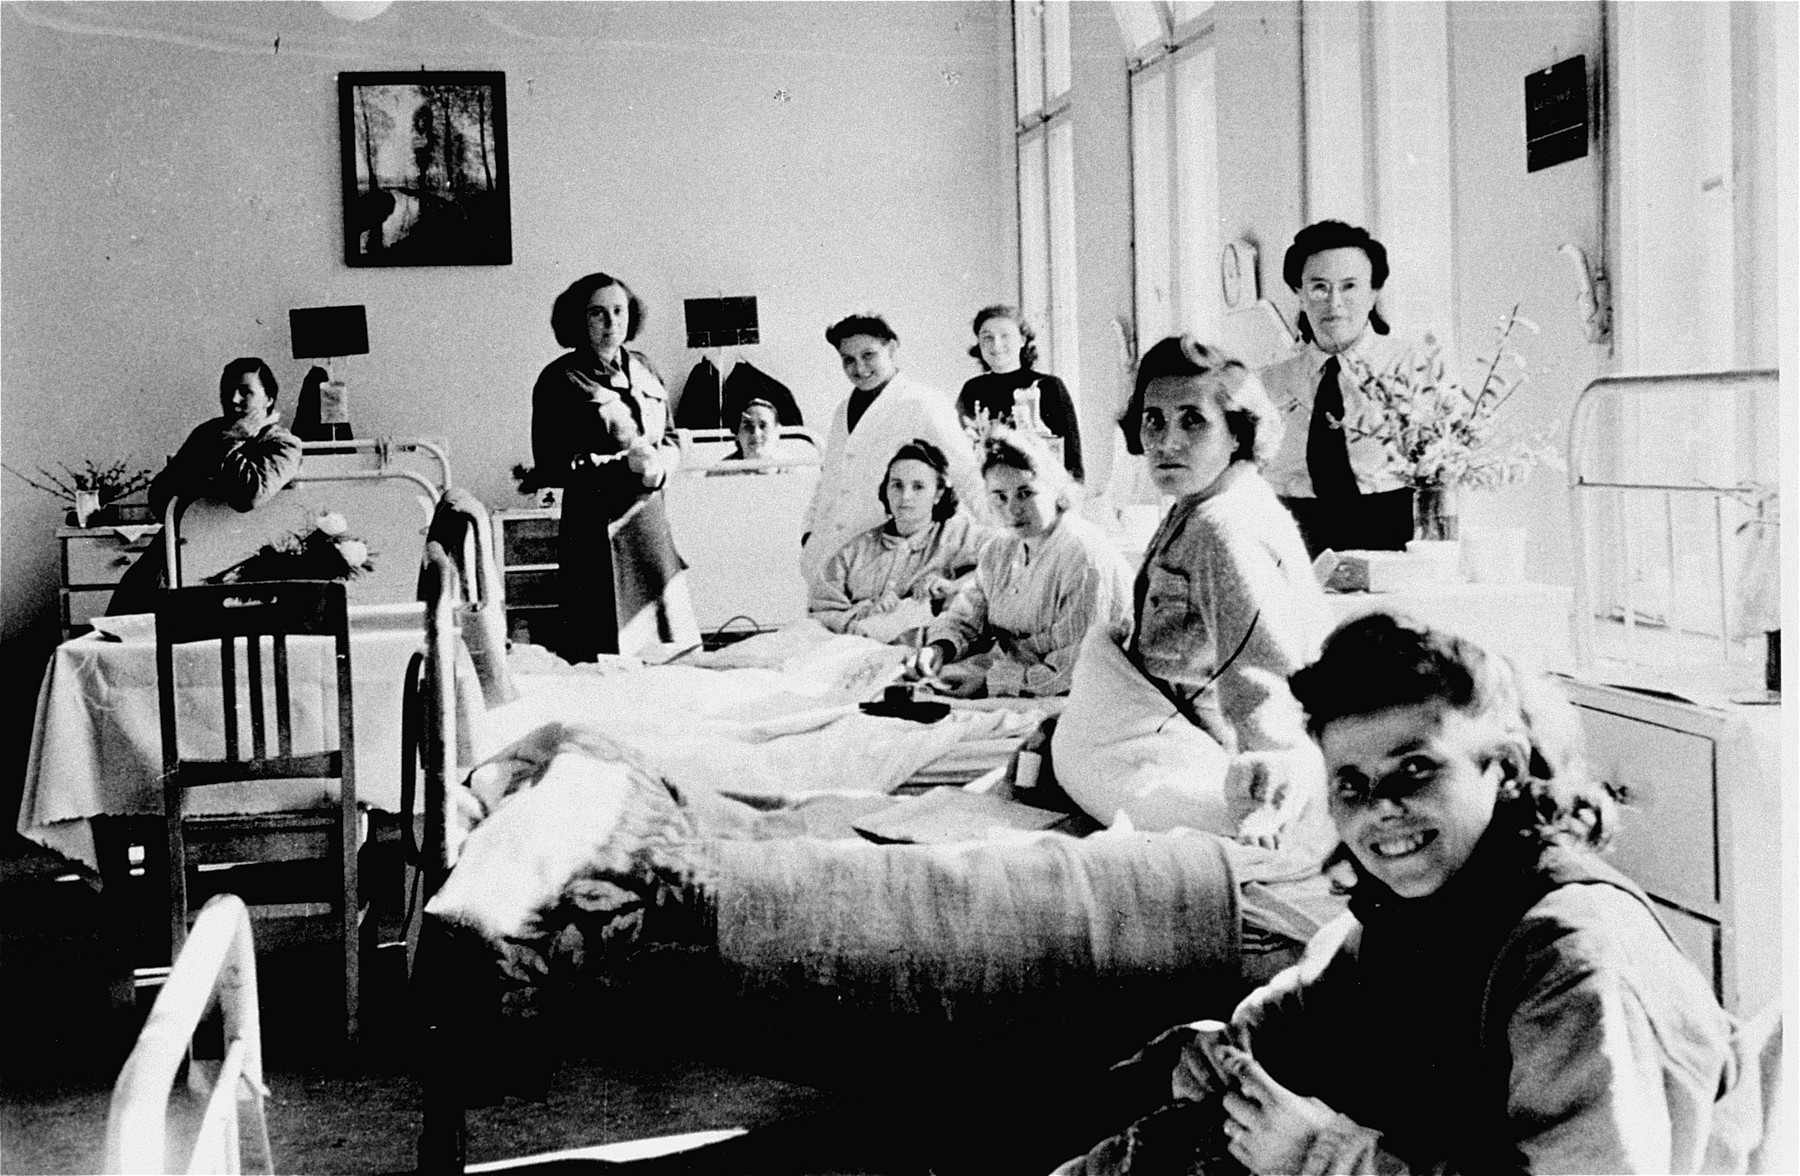 Women's ward of the hospital at the Bergen-Belsen DP camp.  The woman in the fourth bed from the right is Erzsabet Felberman Steiner. Both she and her sister Klara (originally from Gemzse, Hungary) survived Bergen-Belsen and remained there until they immigrated to Canada.   Pictured in the first bed in the front is is Franka Ptasznik Gertel from Lodz. She and her older sister were the only family members to survive the Auschwitz selection.